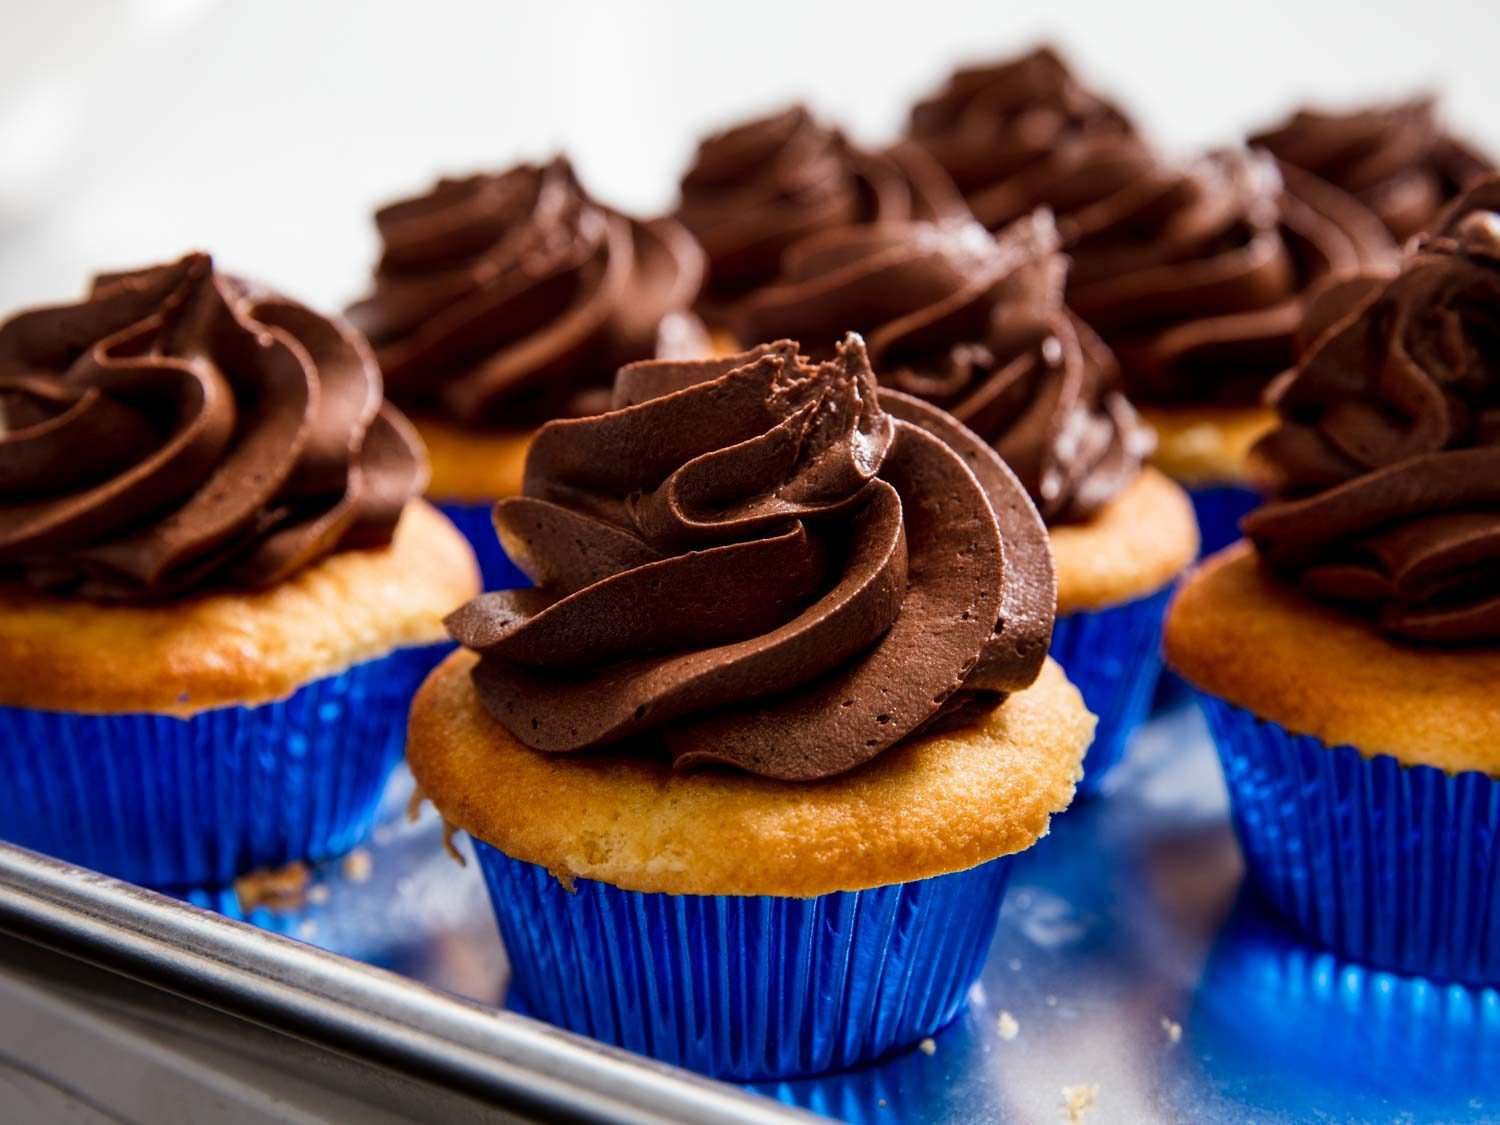 cupcakes with a swirl of American-style chocolate buttercream